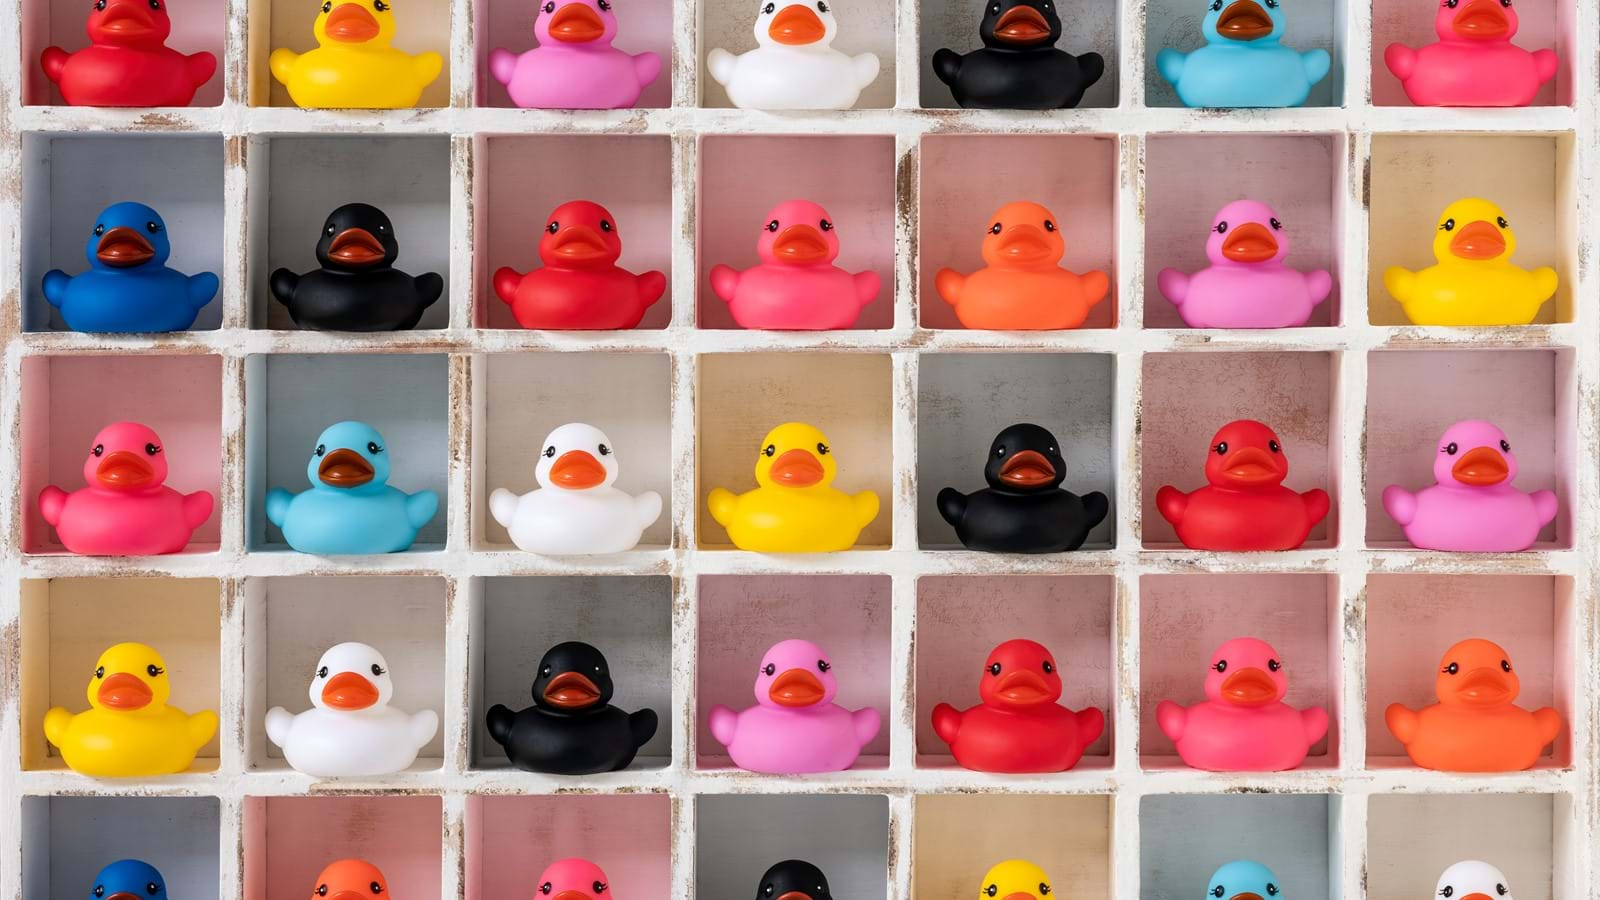 Coloured ducks on a wall symbolizing diversity